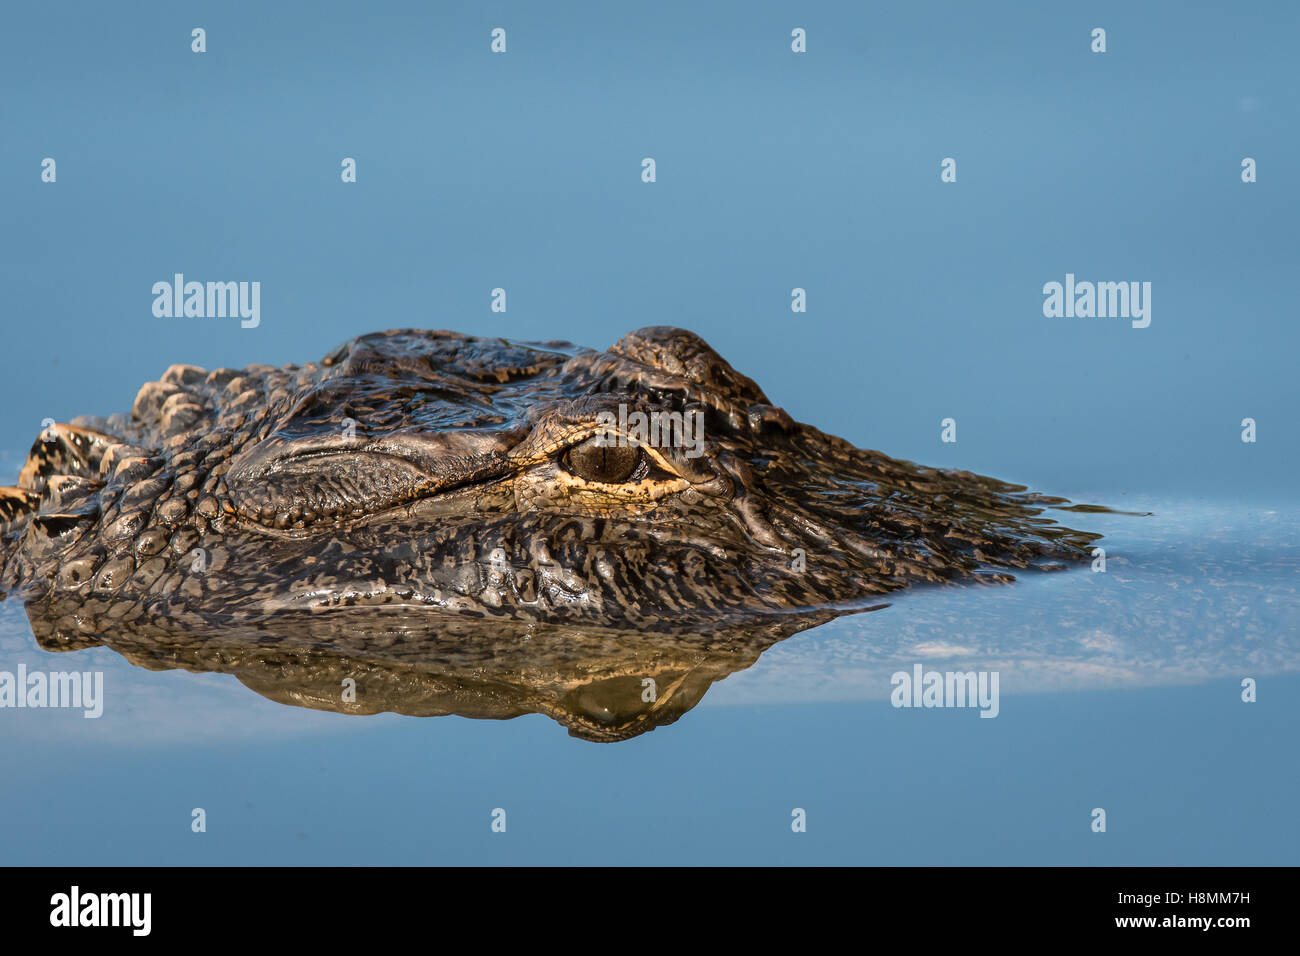 Close-up of an alligator's head and eye - Stock Image